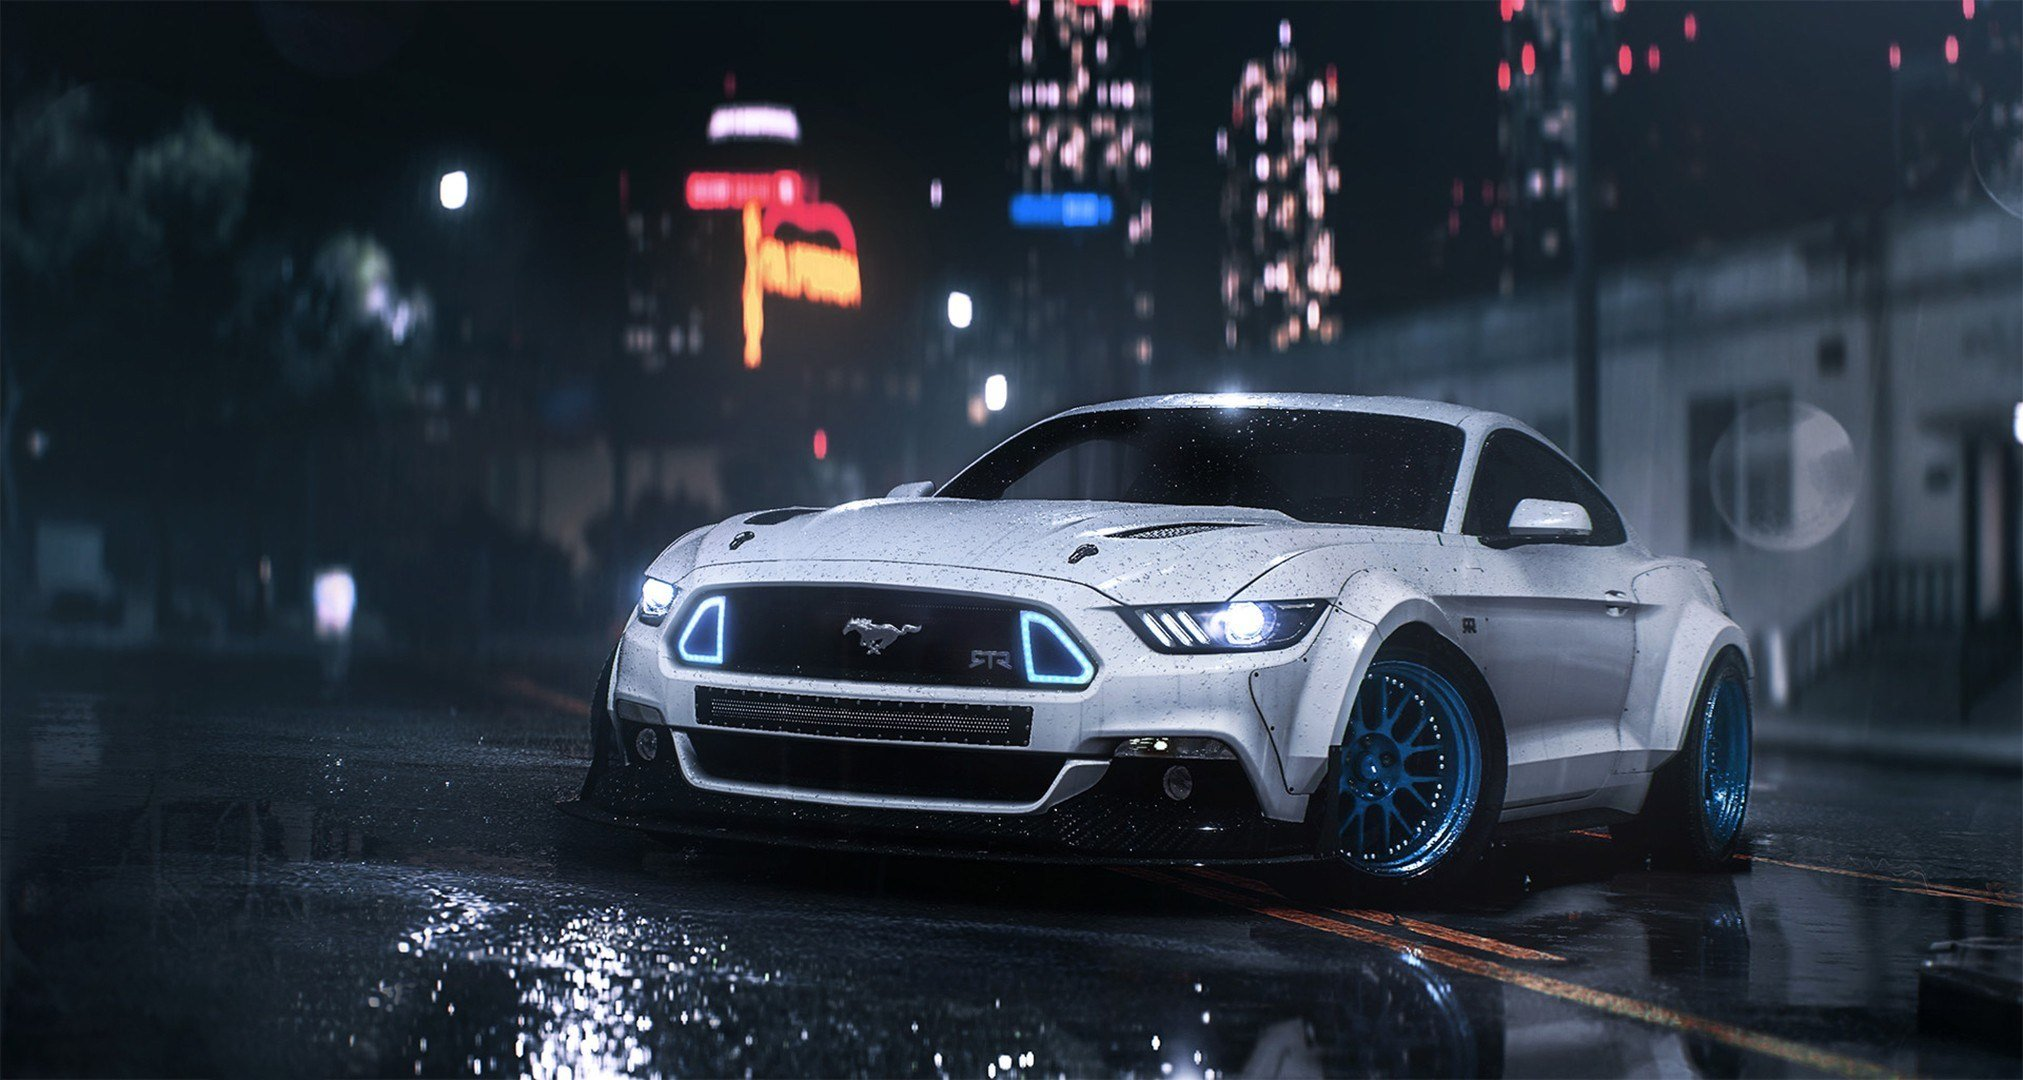 Latest Pictures Of The New Ford Mustang Wallpapers Free Download